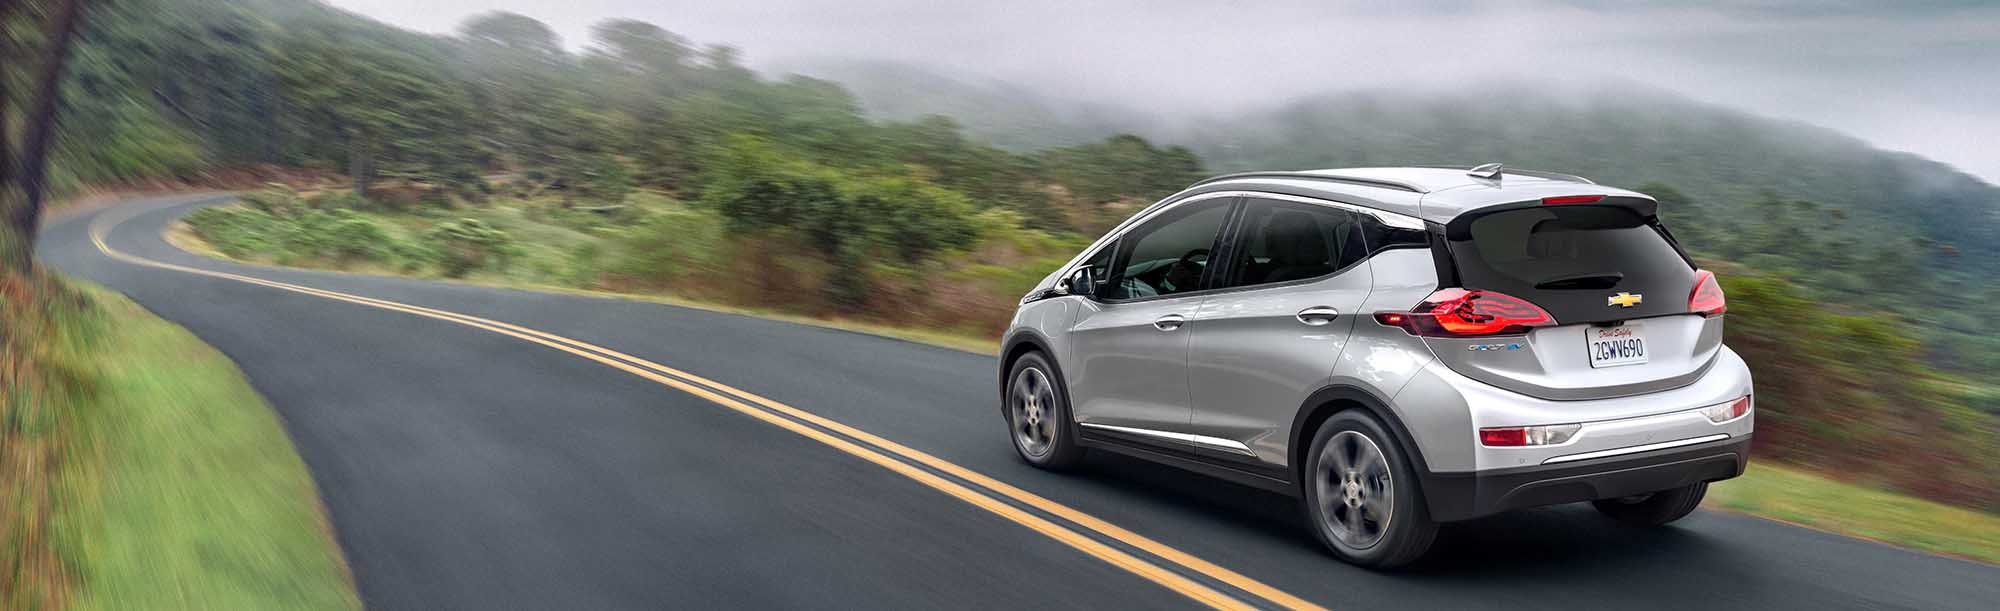 Experience The New 2020 Chevrolet Bolt EV In Loganville, GA Today!